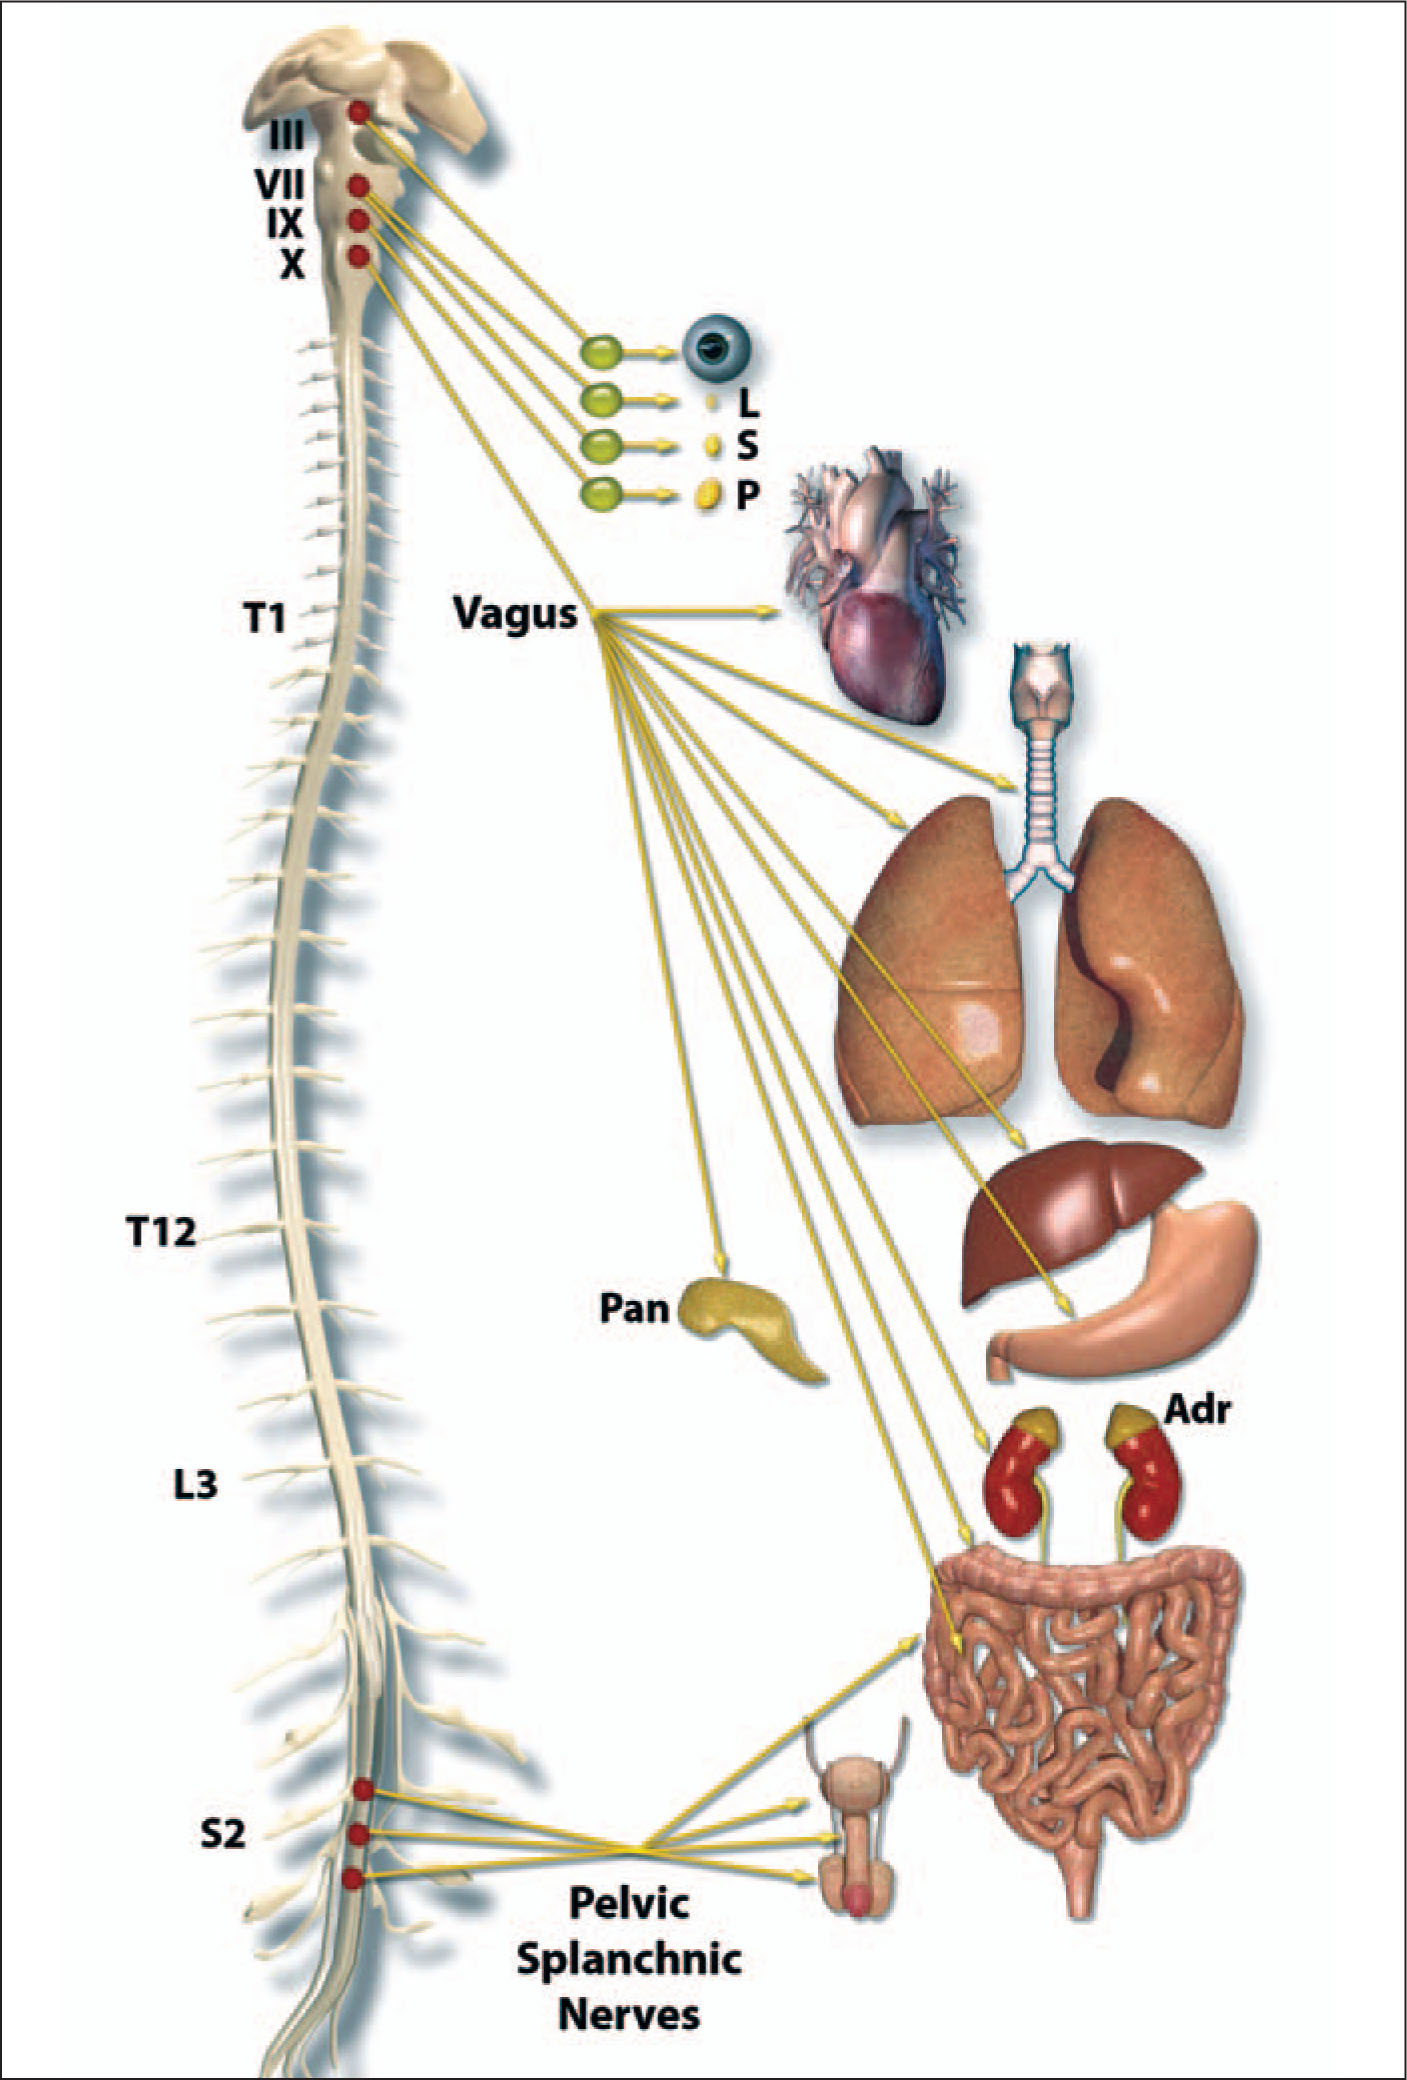 The Parasympathetic Nervous System. Preganglionic Parasympathetic Neurons are Located Primarily in the Brainstem, with an Additional Set Between Spinal Cord Segments S2 to S4. (See Figure 4 Caption for Abbreviations.) A Note from the Editors: All Illustrations in This Article Have Been Created by George I. Viamontes, MD, PhD, for Specific Use in This Issue of Psychiatric Annals.